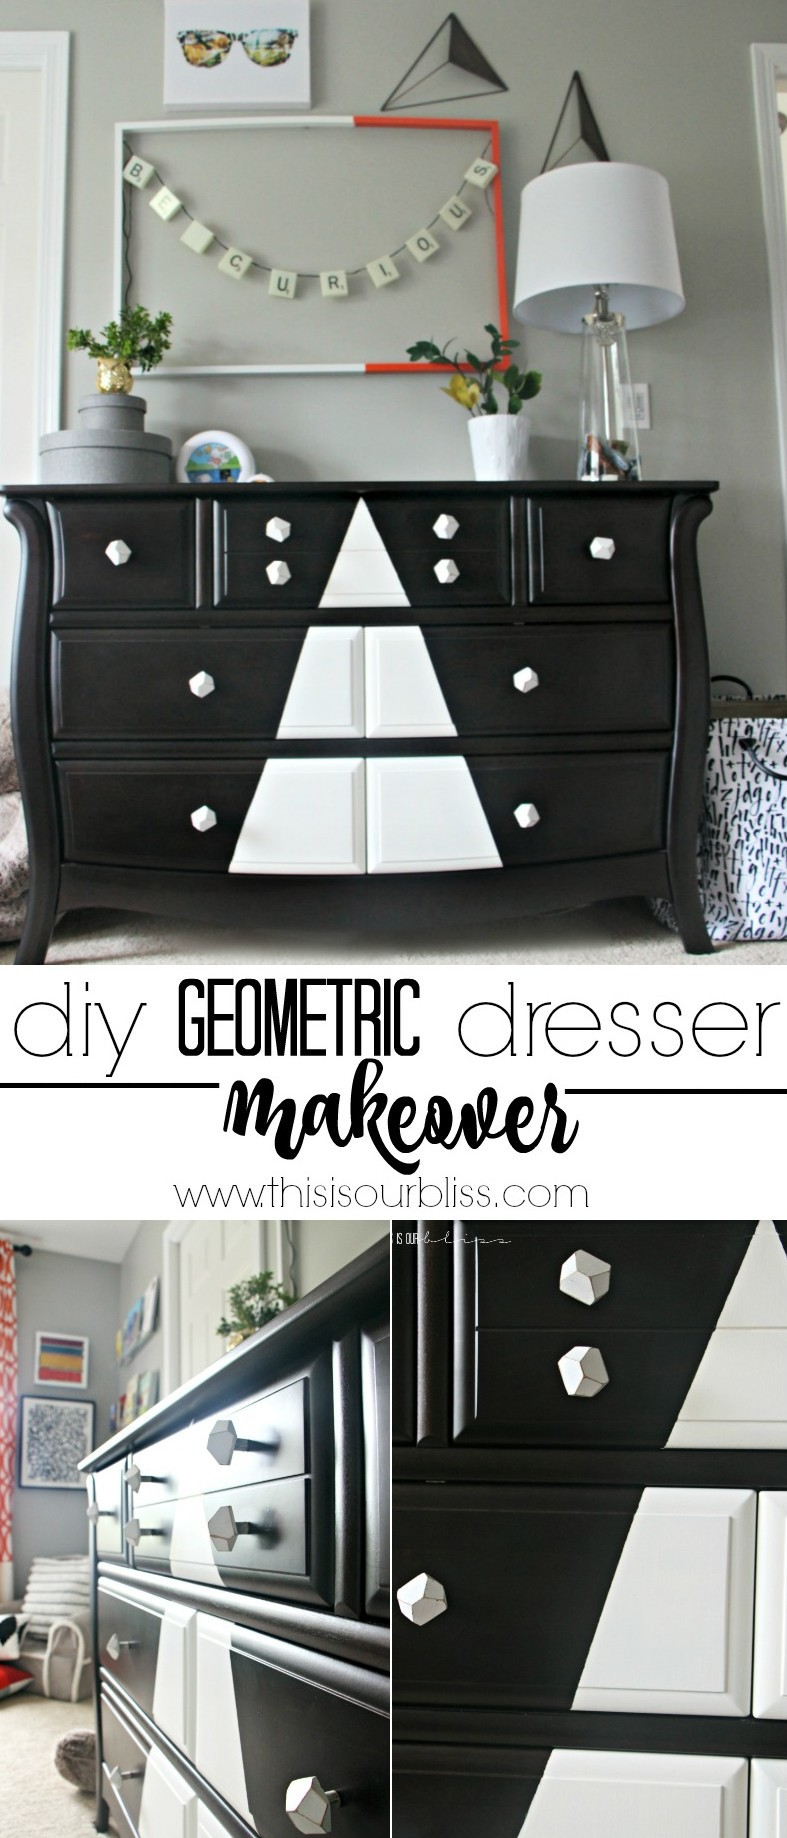 How to update an old nursery dresser | Modern Big Boy Room Dresser update | This is our Bliss | www.thisisourbliss.com